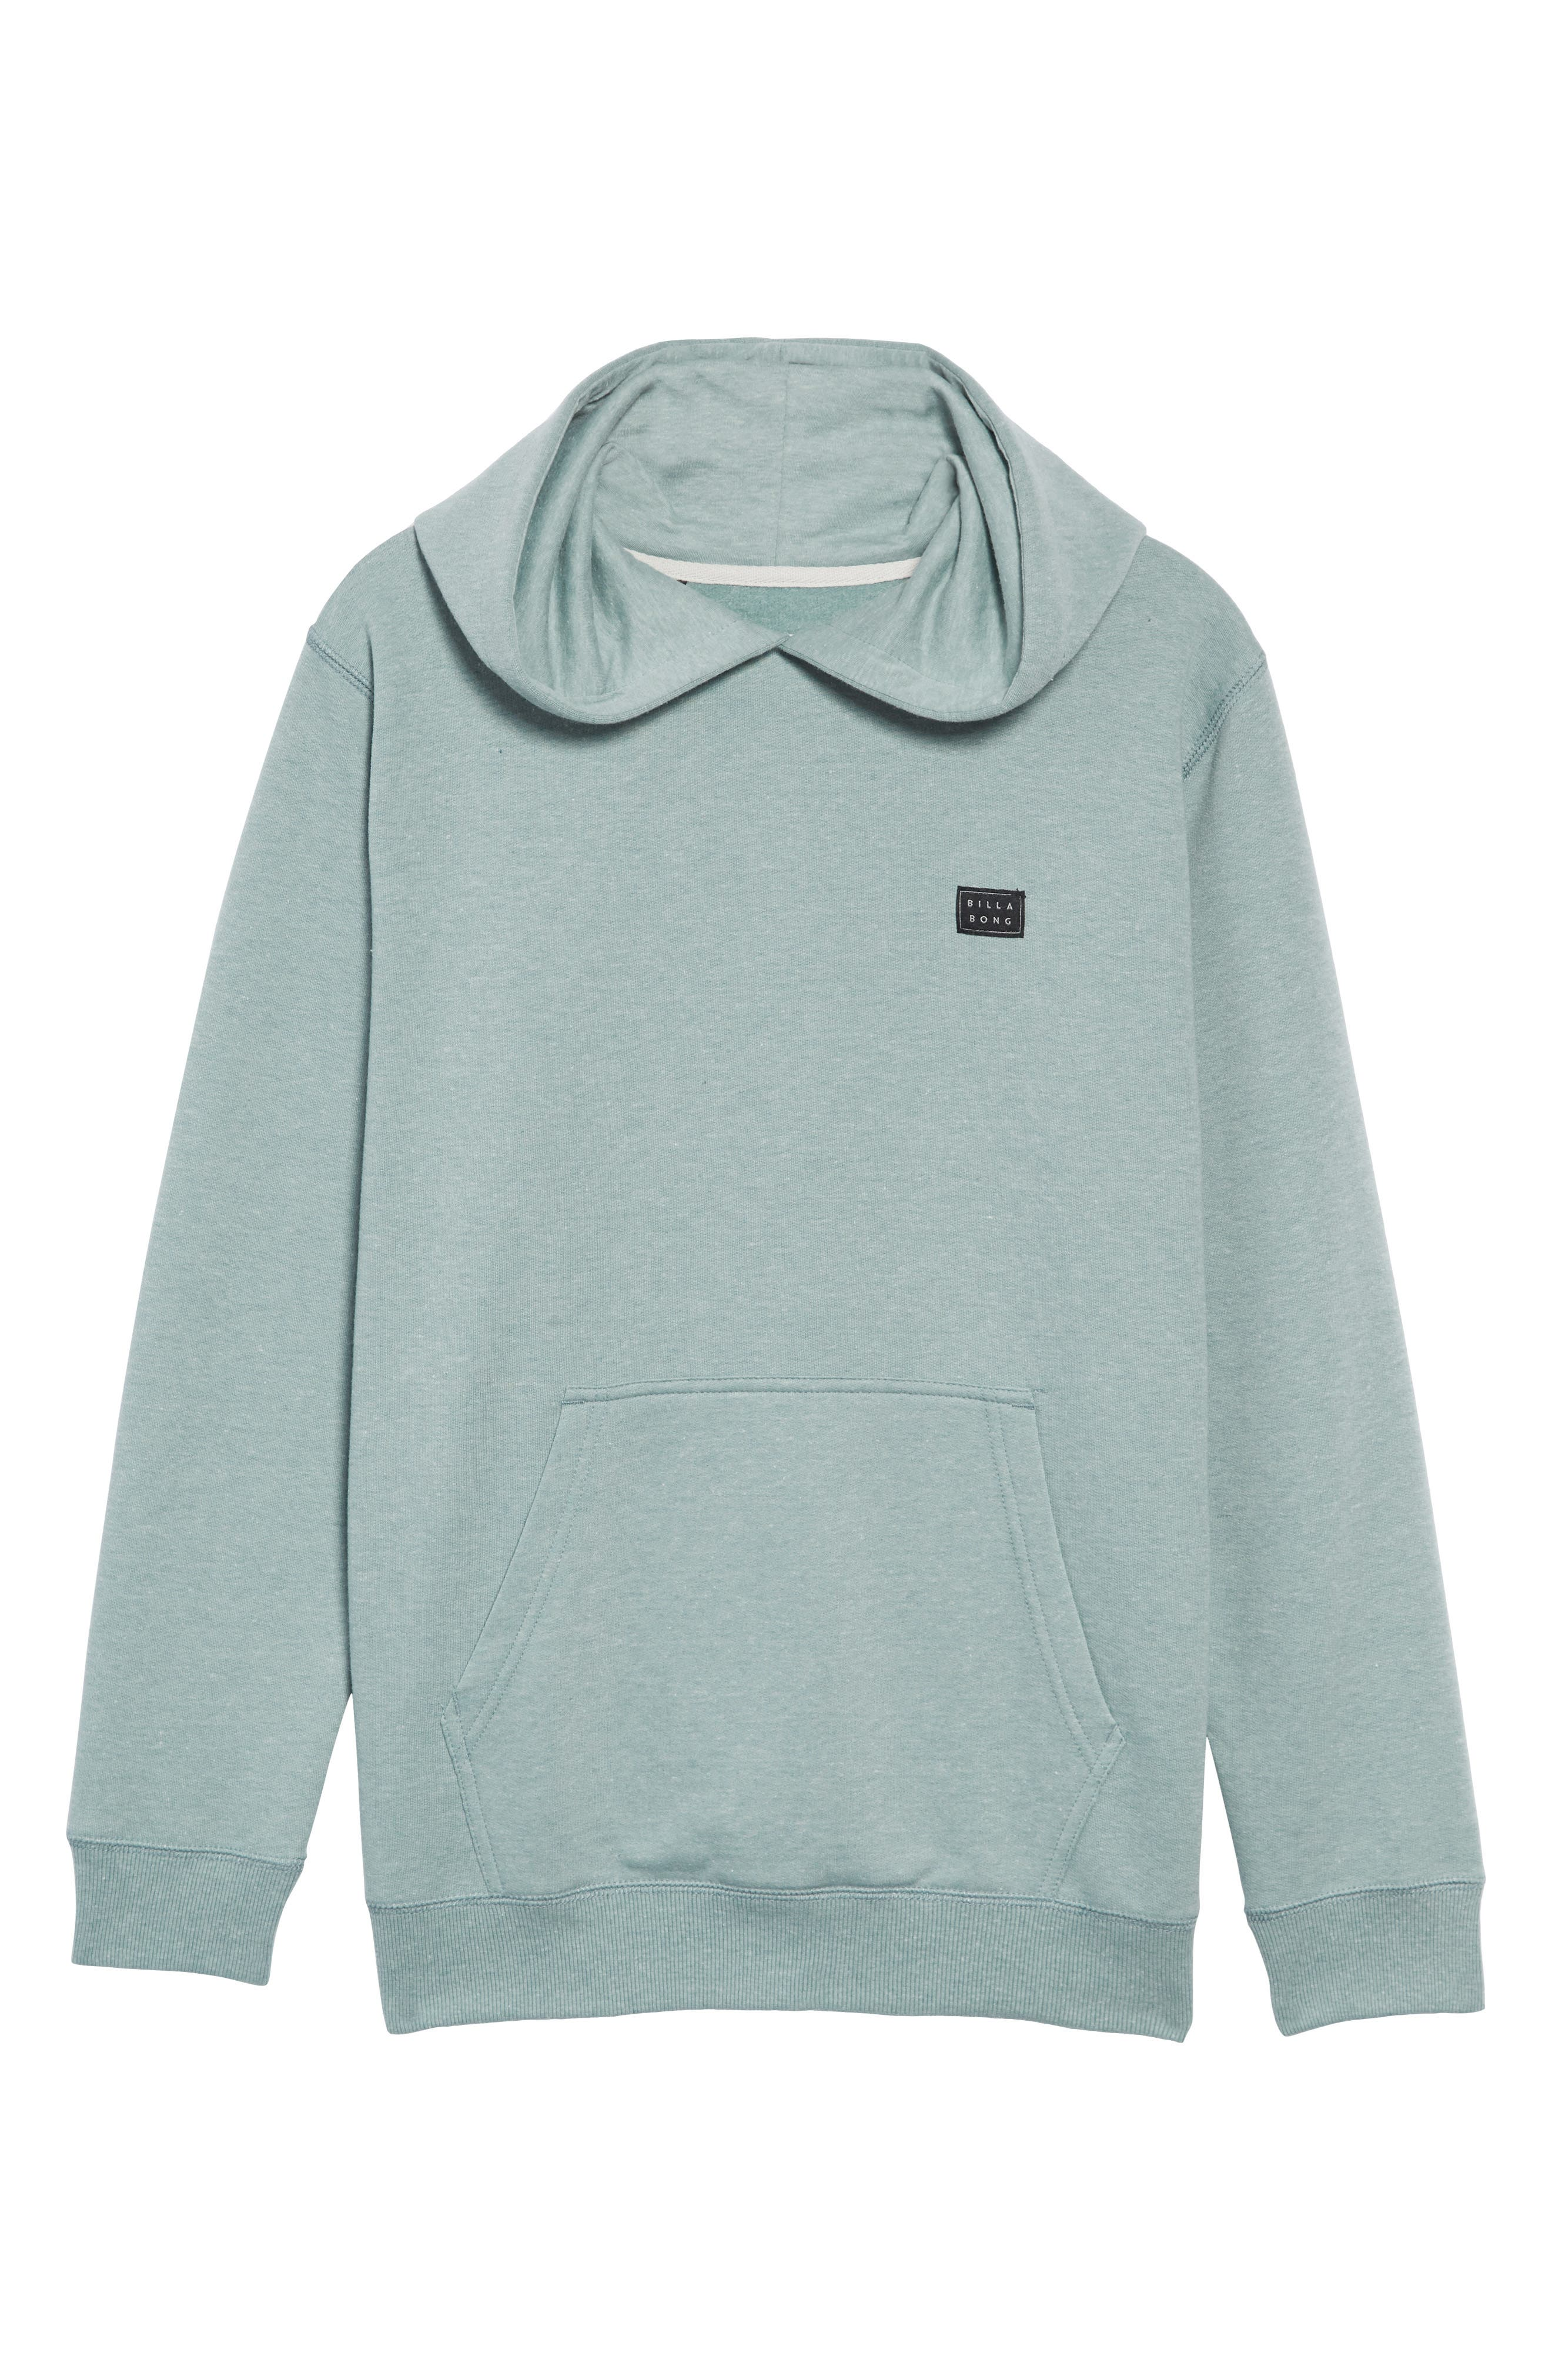 All Day Pullover Hoodie,                         Main,                         color, DUST GREEN